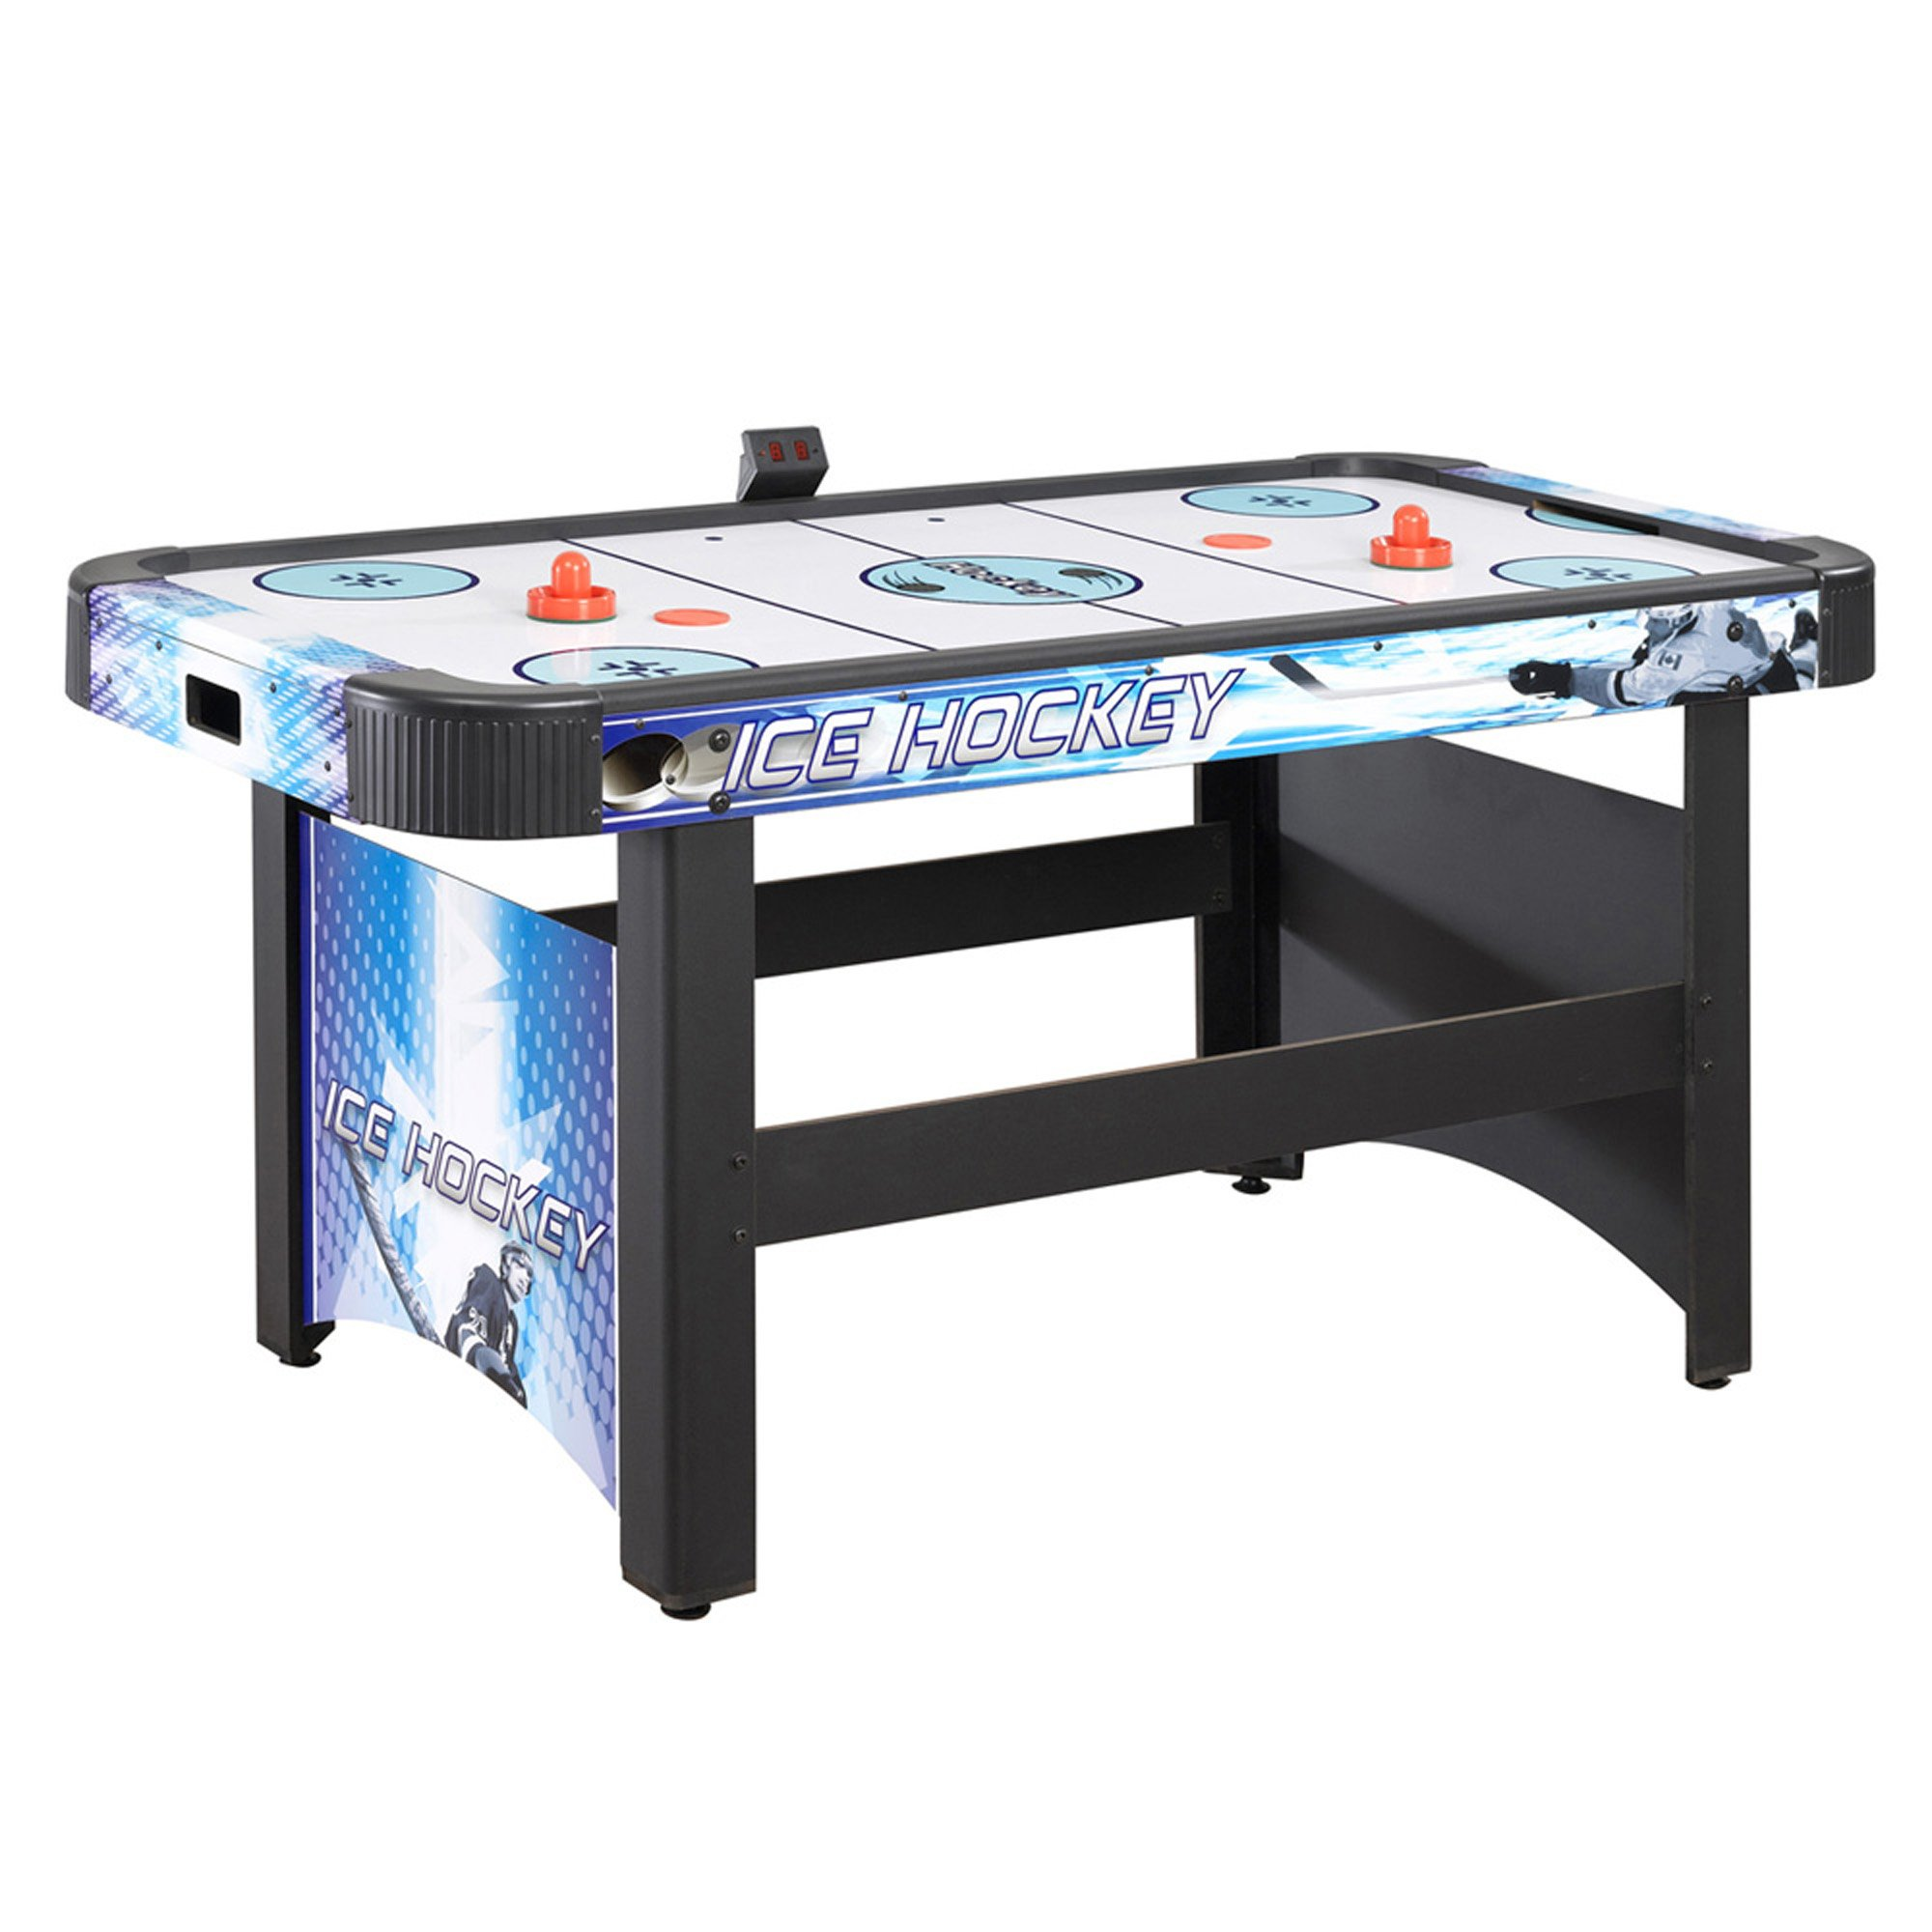 Hathaway Face-Off 5-Foot Air Hockey Game Table for Family Game Rooms with Electronic Scoring, Free Pucks & Strikers by Hathaway